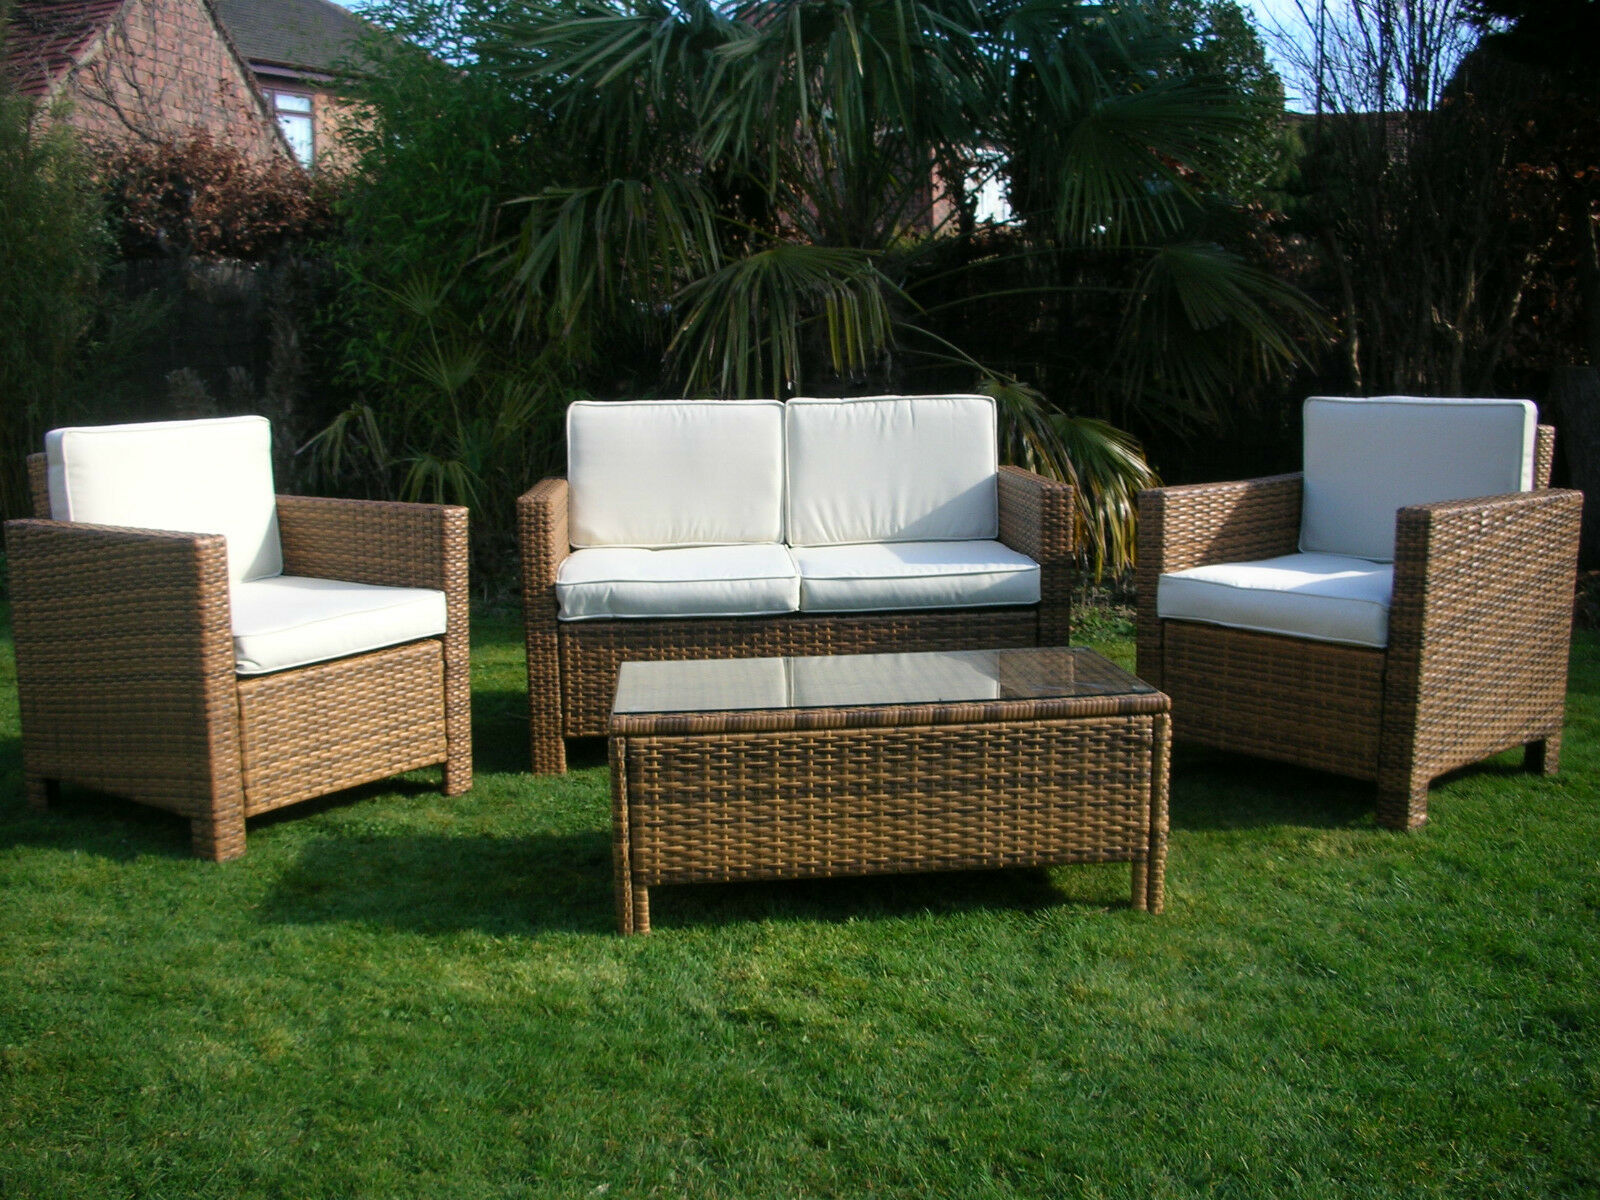 New garden rattan wicker outdoor conservatory furniture for Outdoor wicker furniture